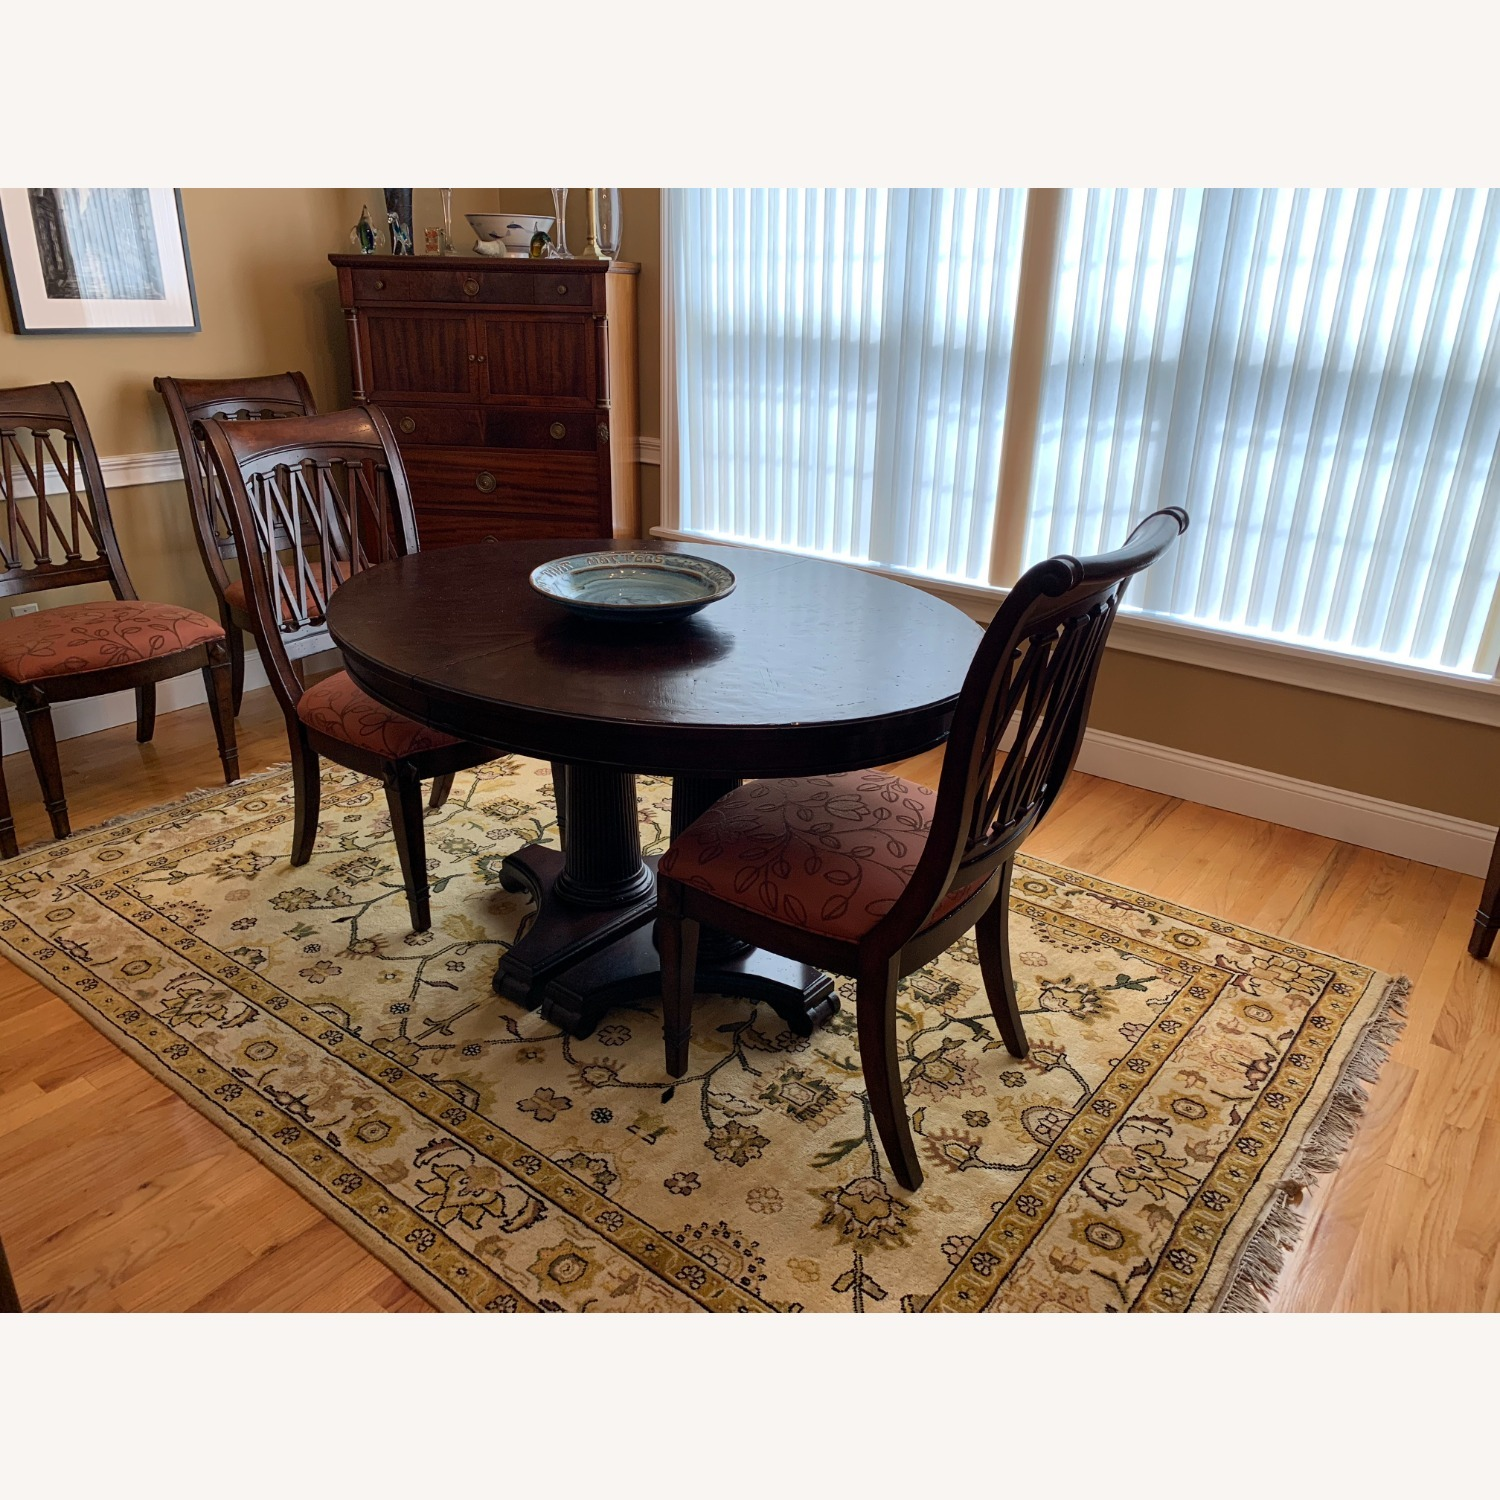 Drexel Solid Wood Dining Table with 6 chairs - image-1